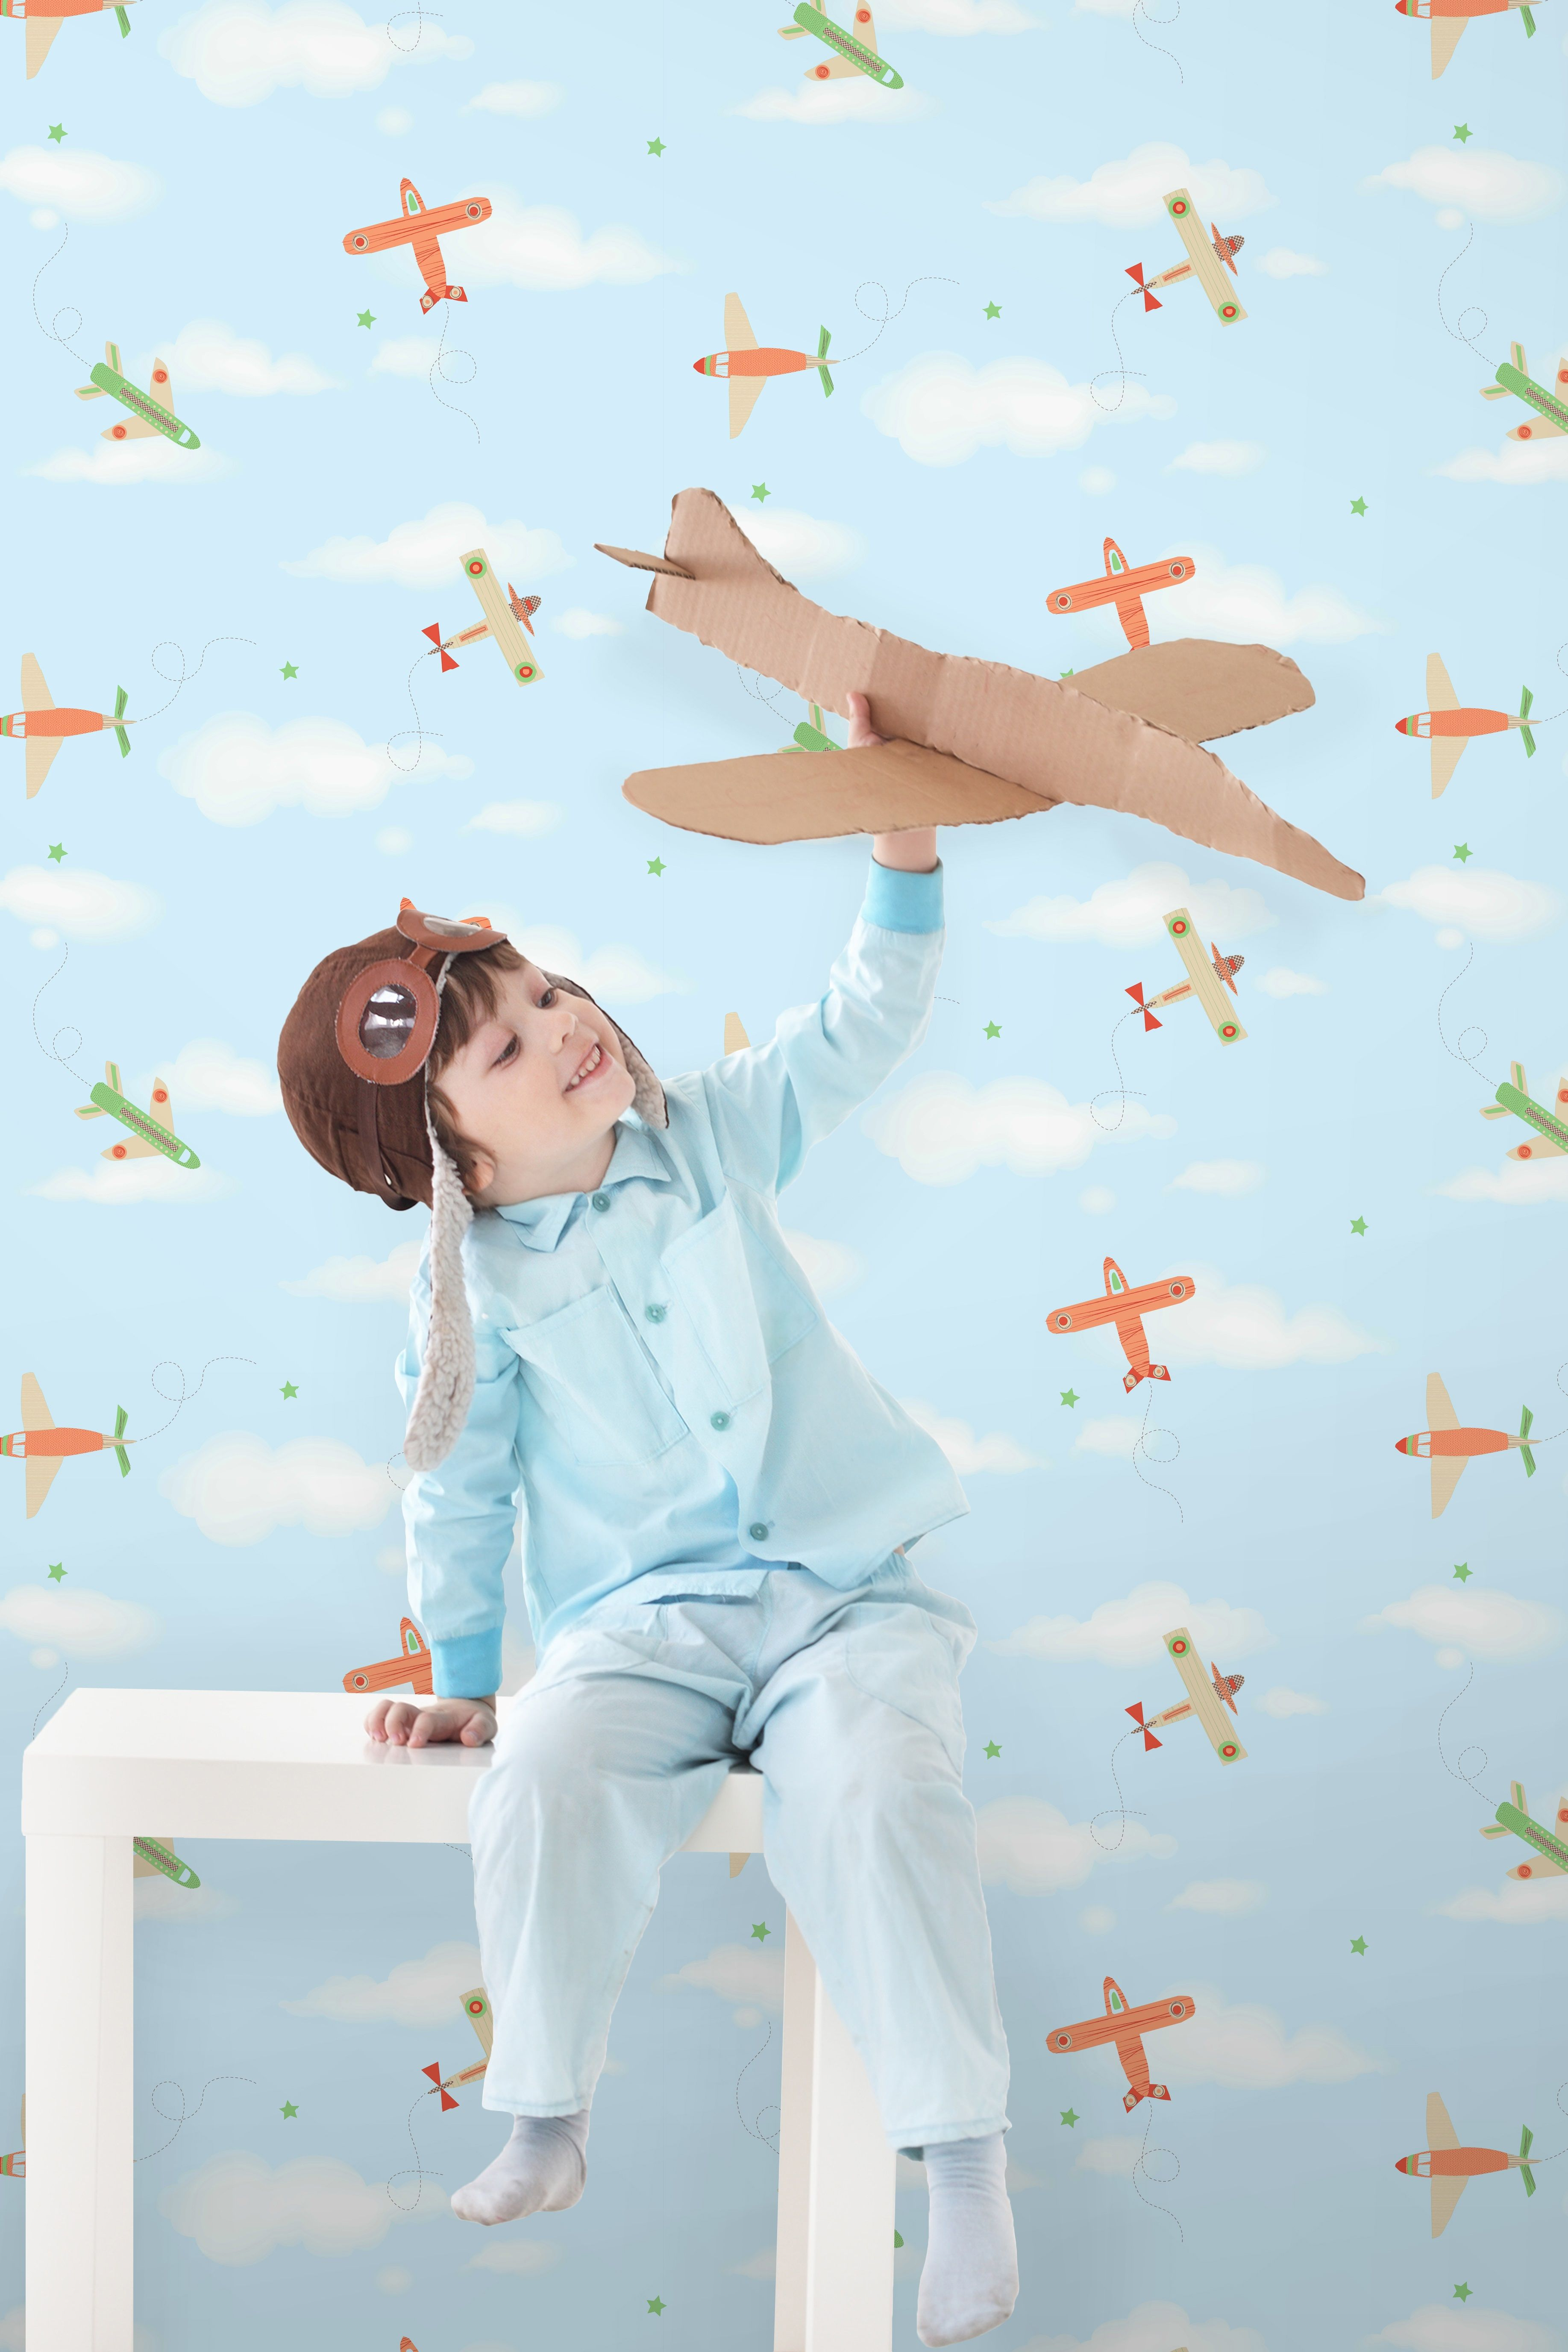 Decorline Carousel Planes Wallpaper, Blue Natural In Home, Furniture &